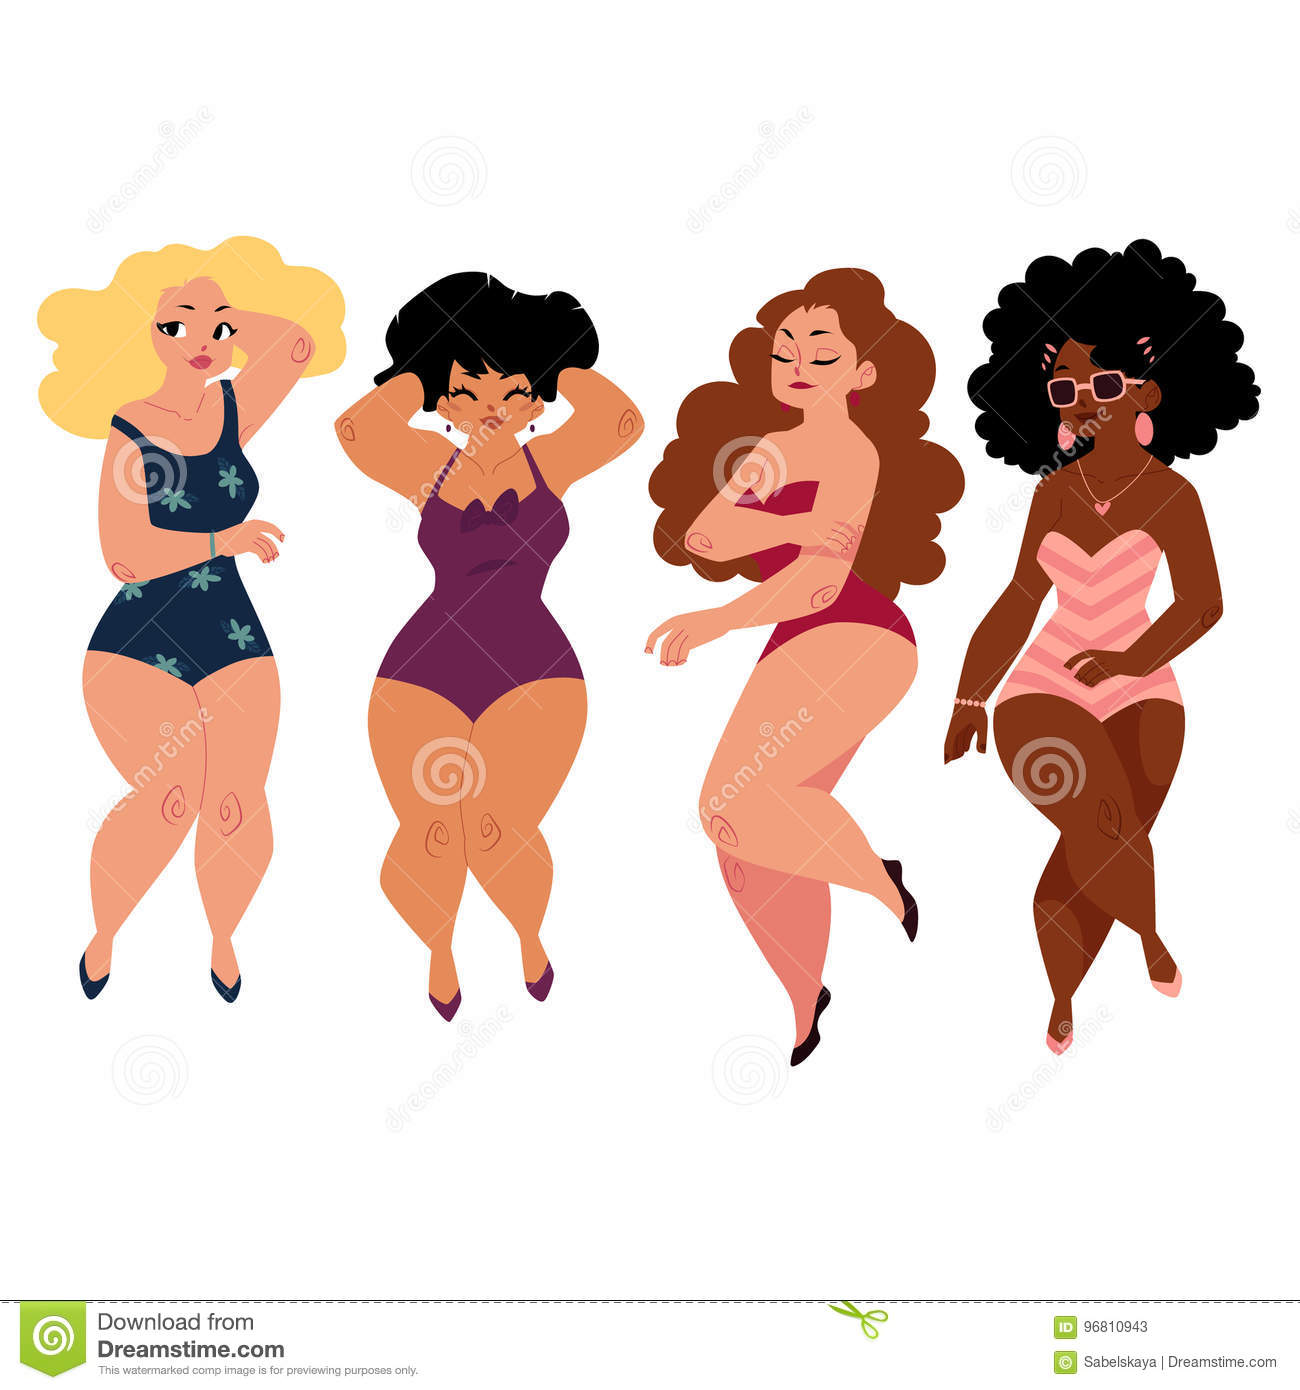 Plump, Curvy Women, Girls, Plus Size Models In Swimming Suits Stock Vector -6285